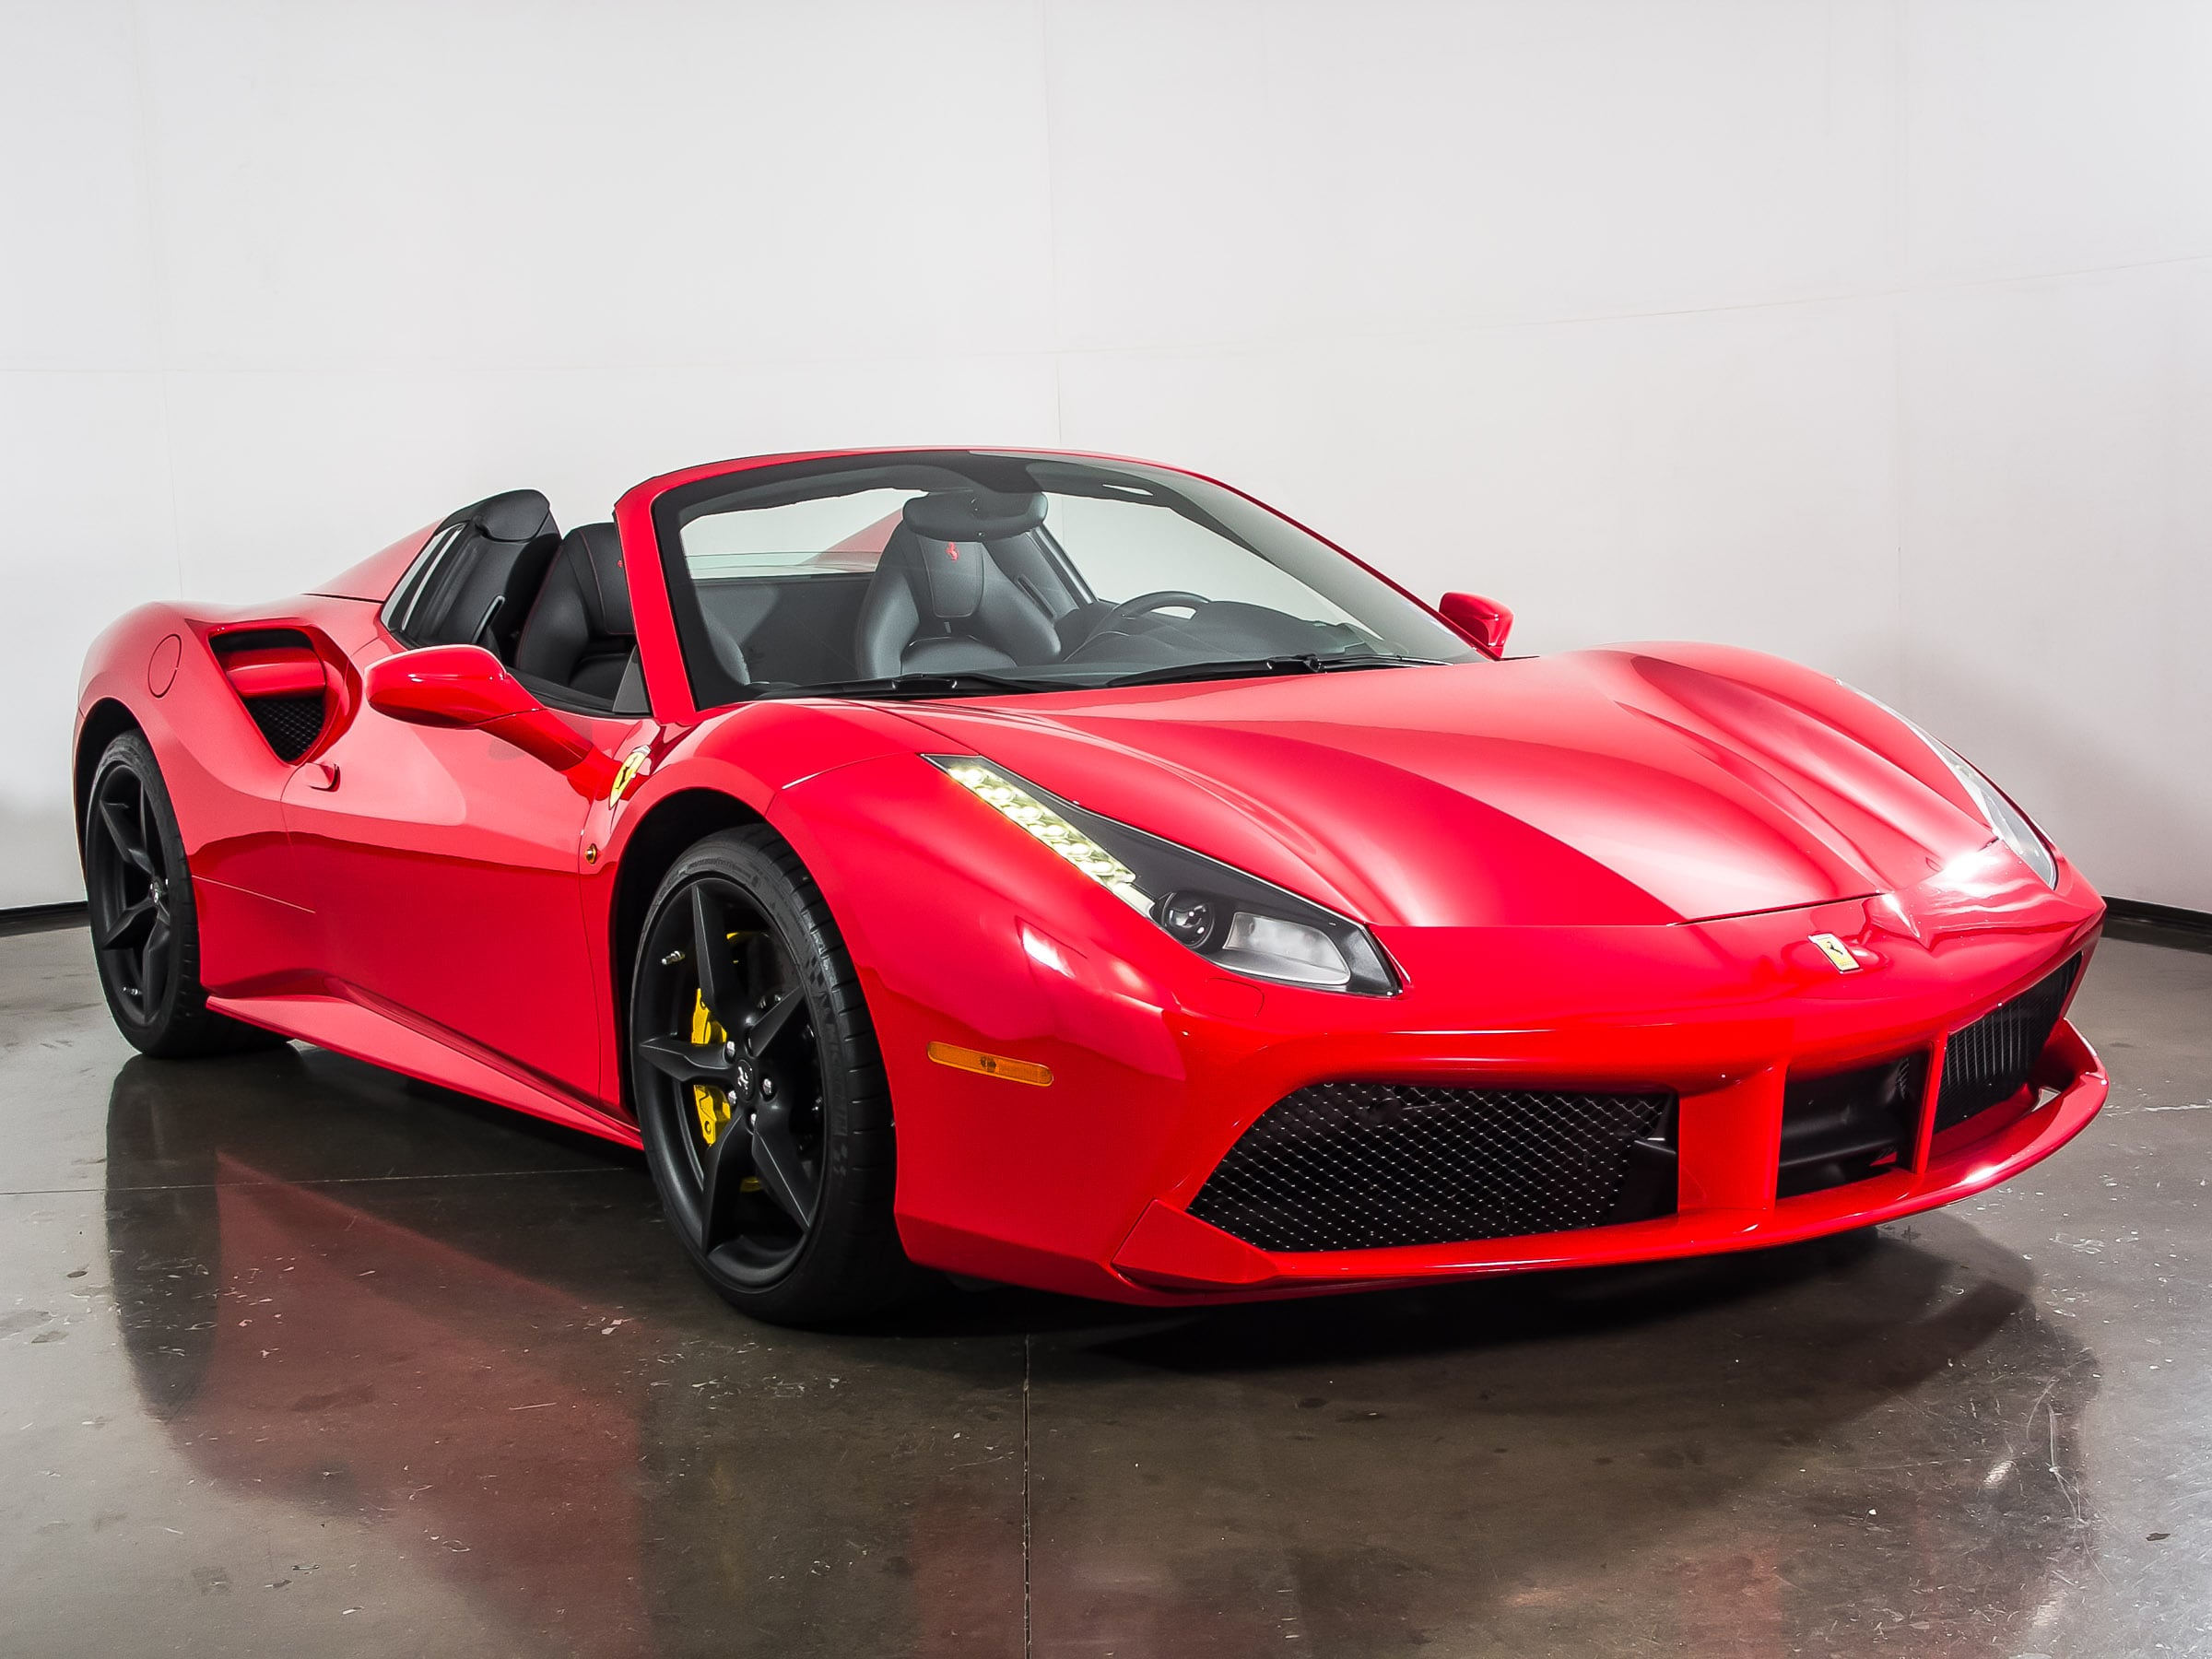 ontario used markham in house ferrari dodge ram chrysler jeep and new financing leasing car